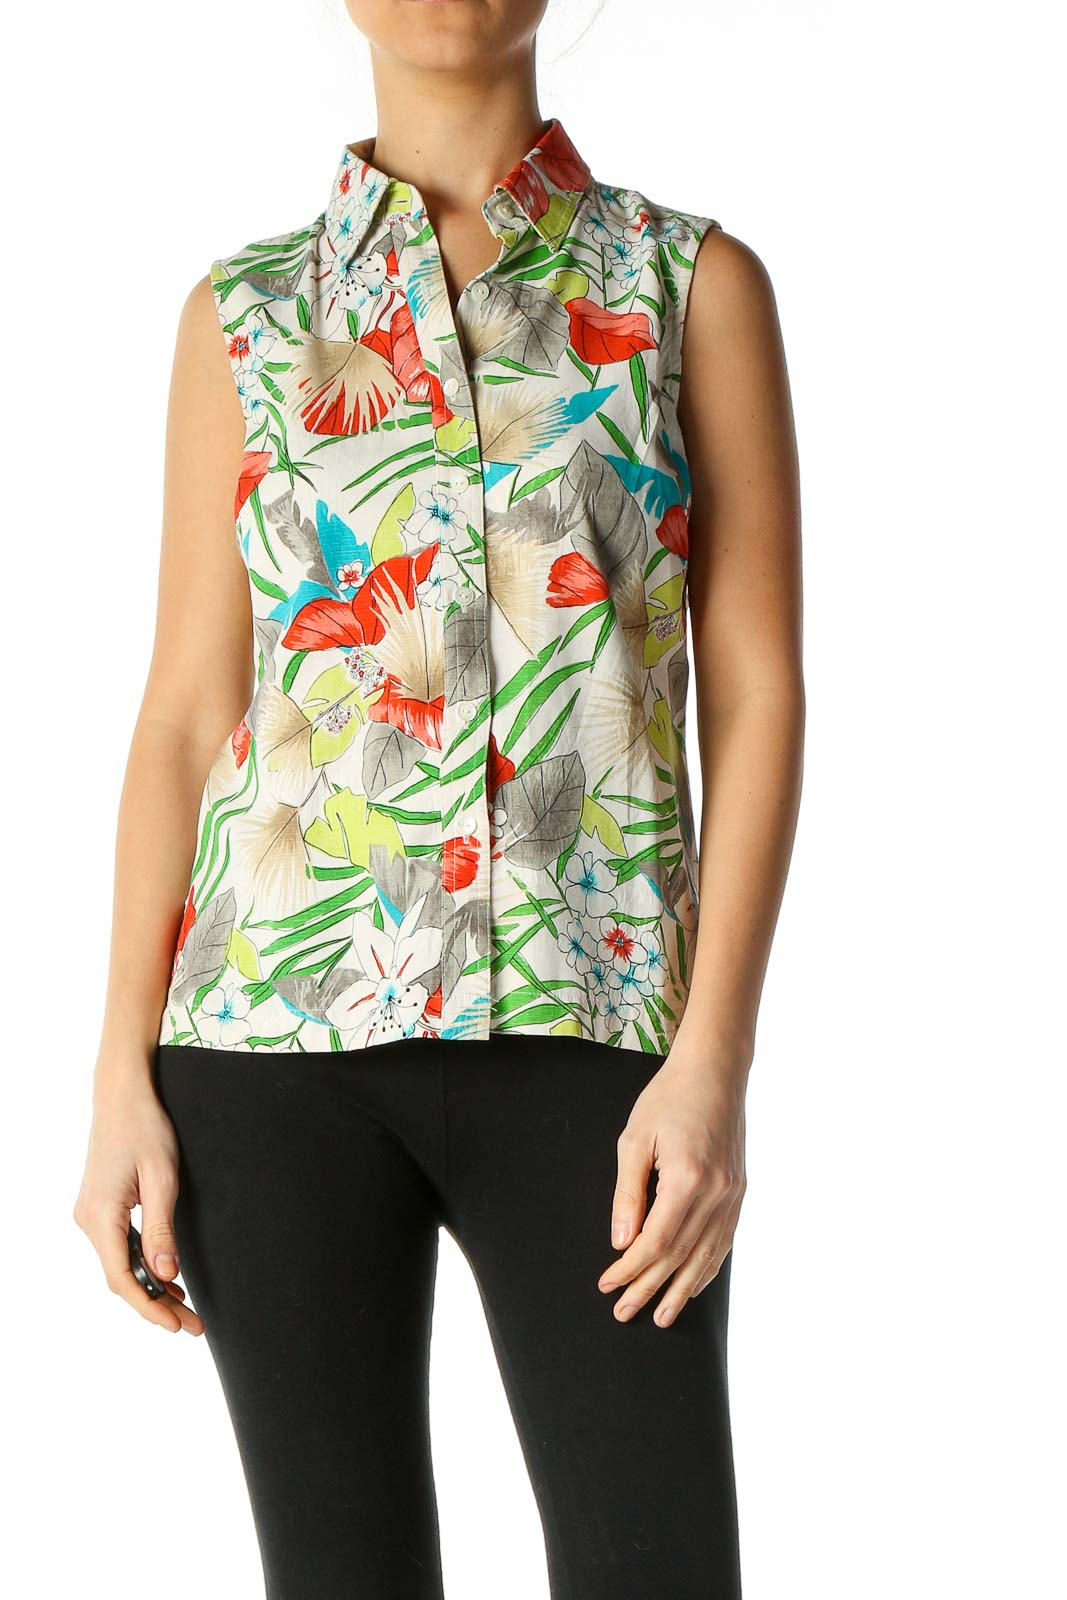 White Graphic Print Casual Blouse Front